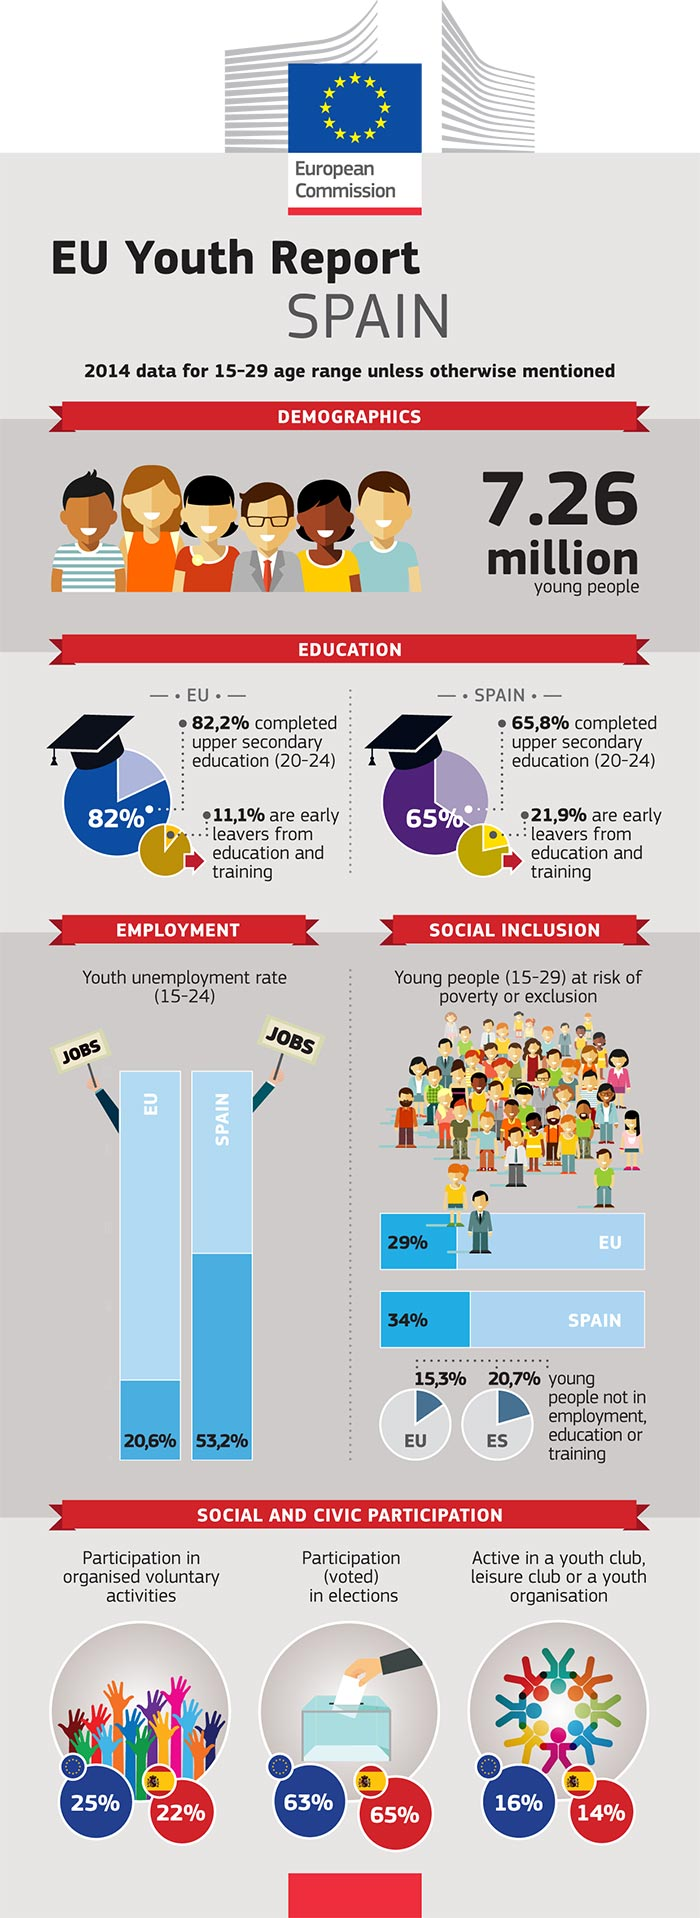 EU Youth Report infographic: Spain